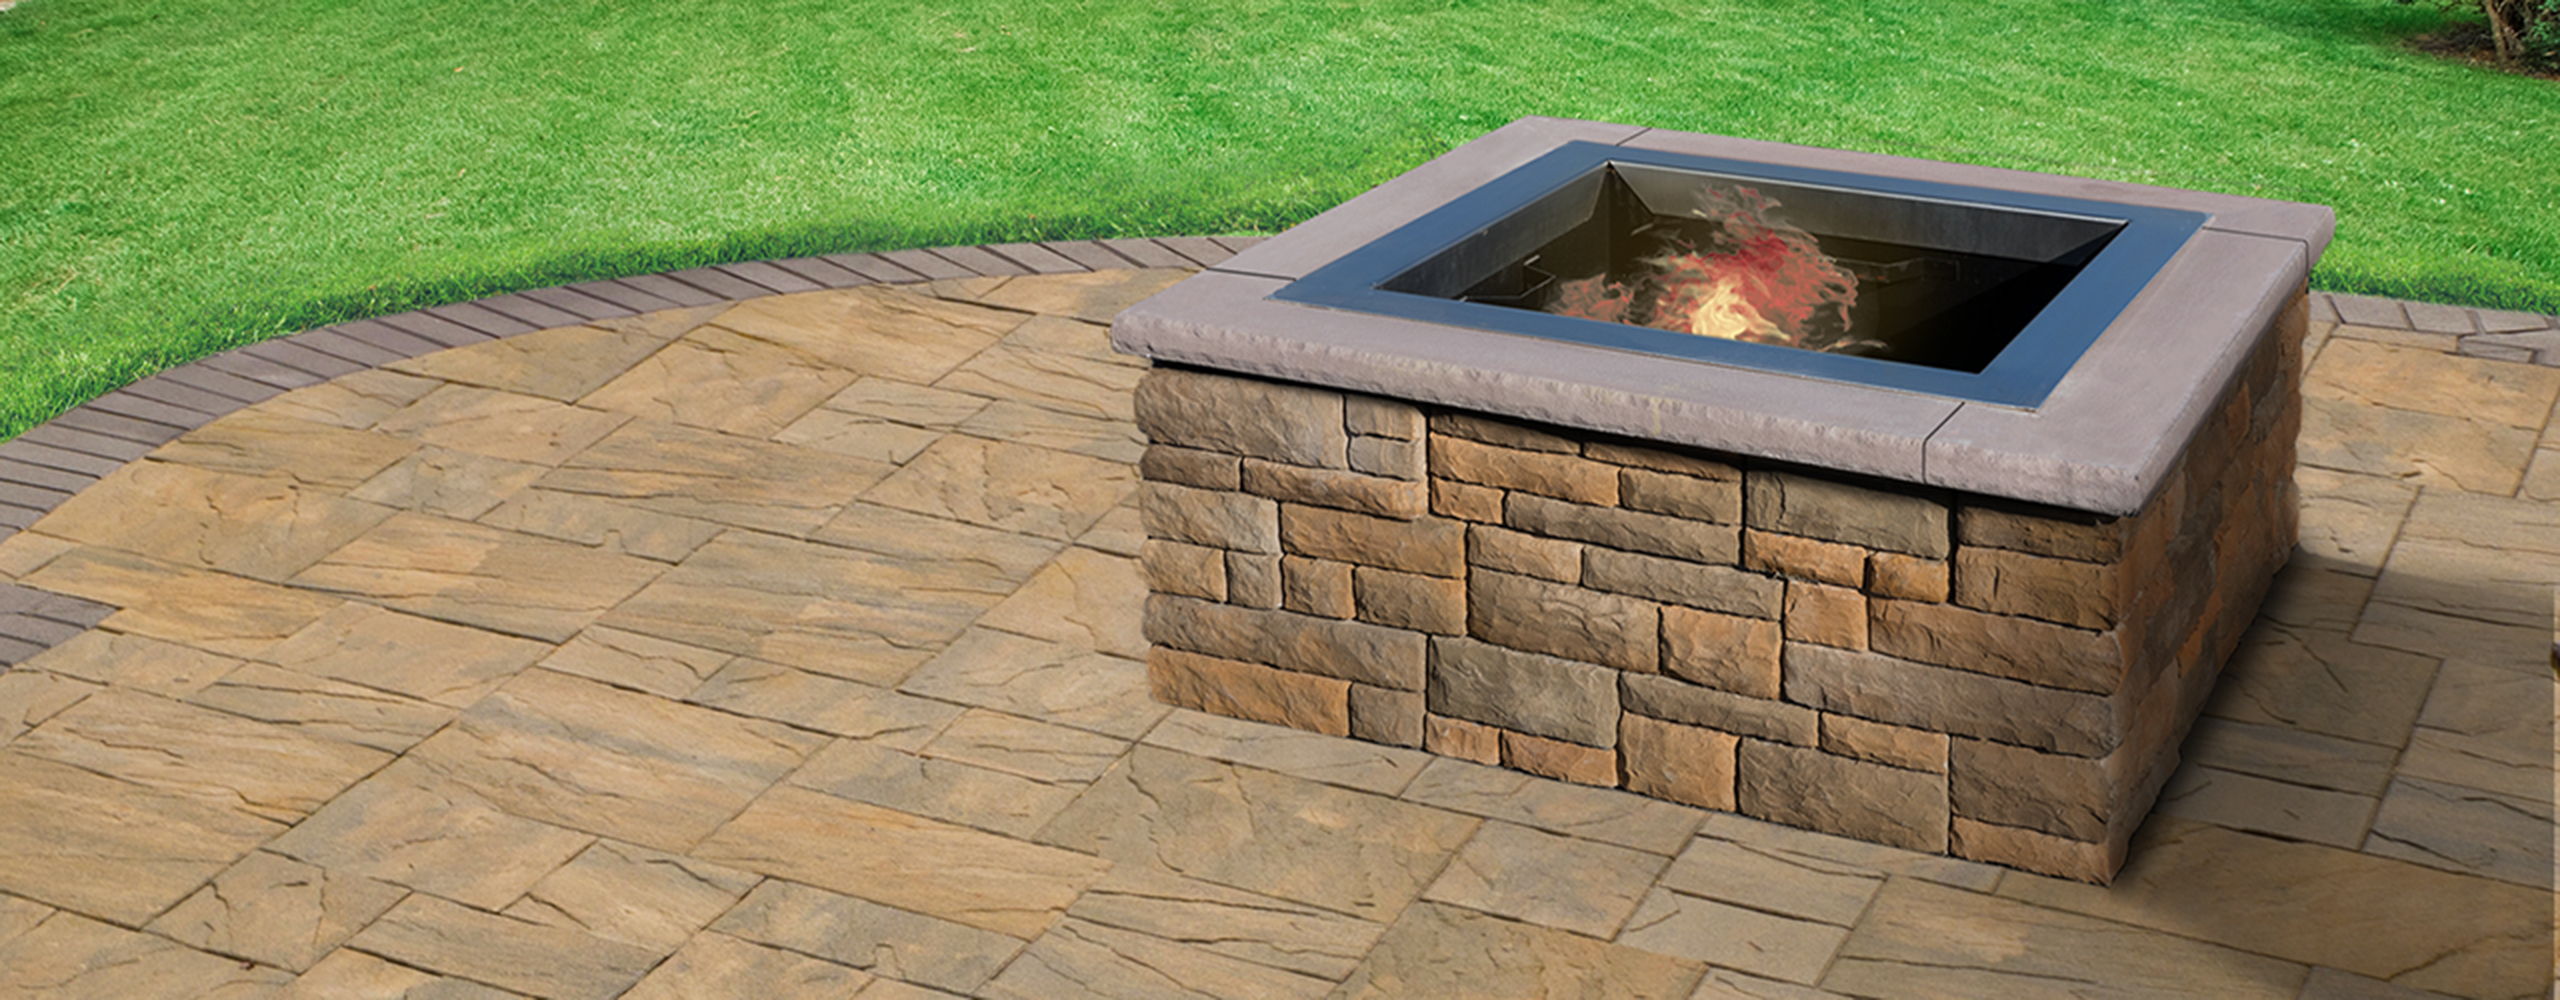 Ep Henry Cast Stone Wall Square Fire Pit Kit Rev4 Square Firepit intended for dimensions 2560 X 1000